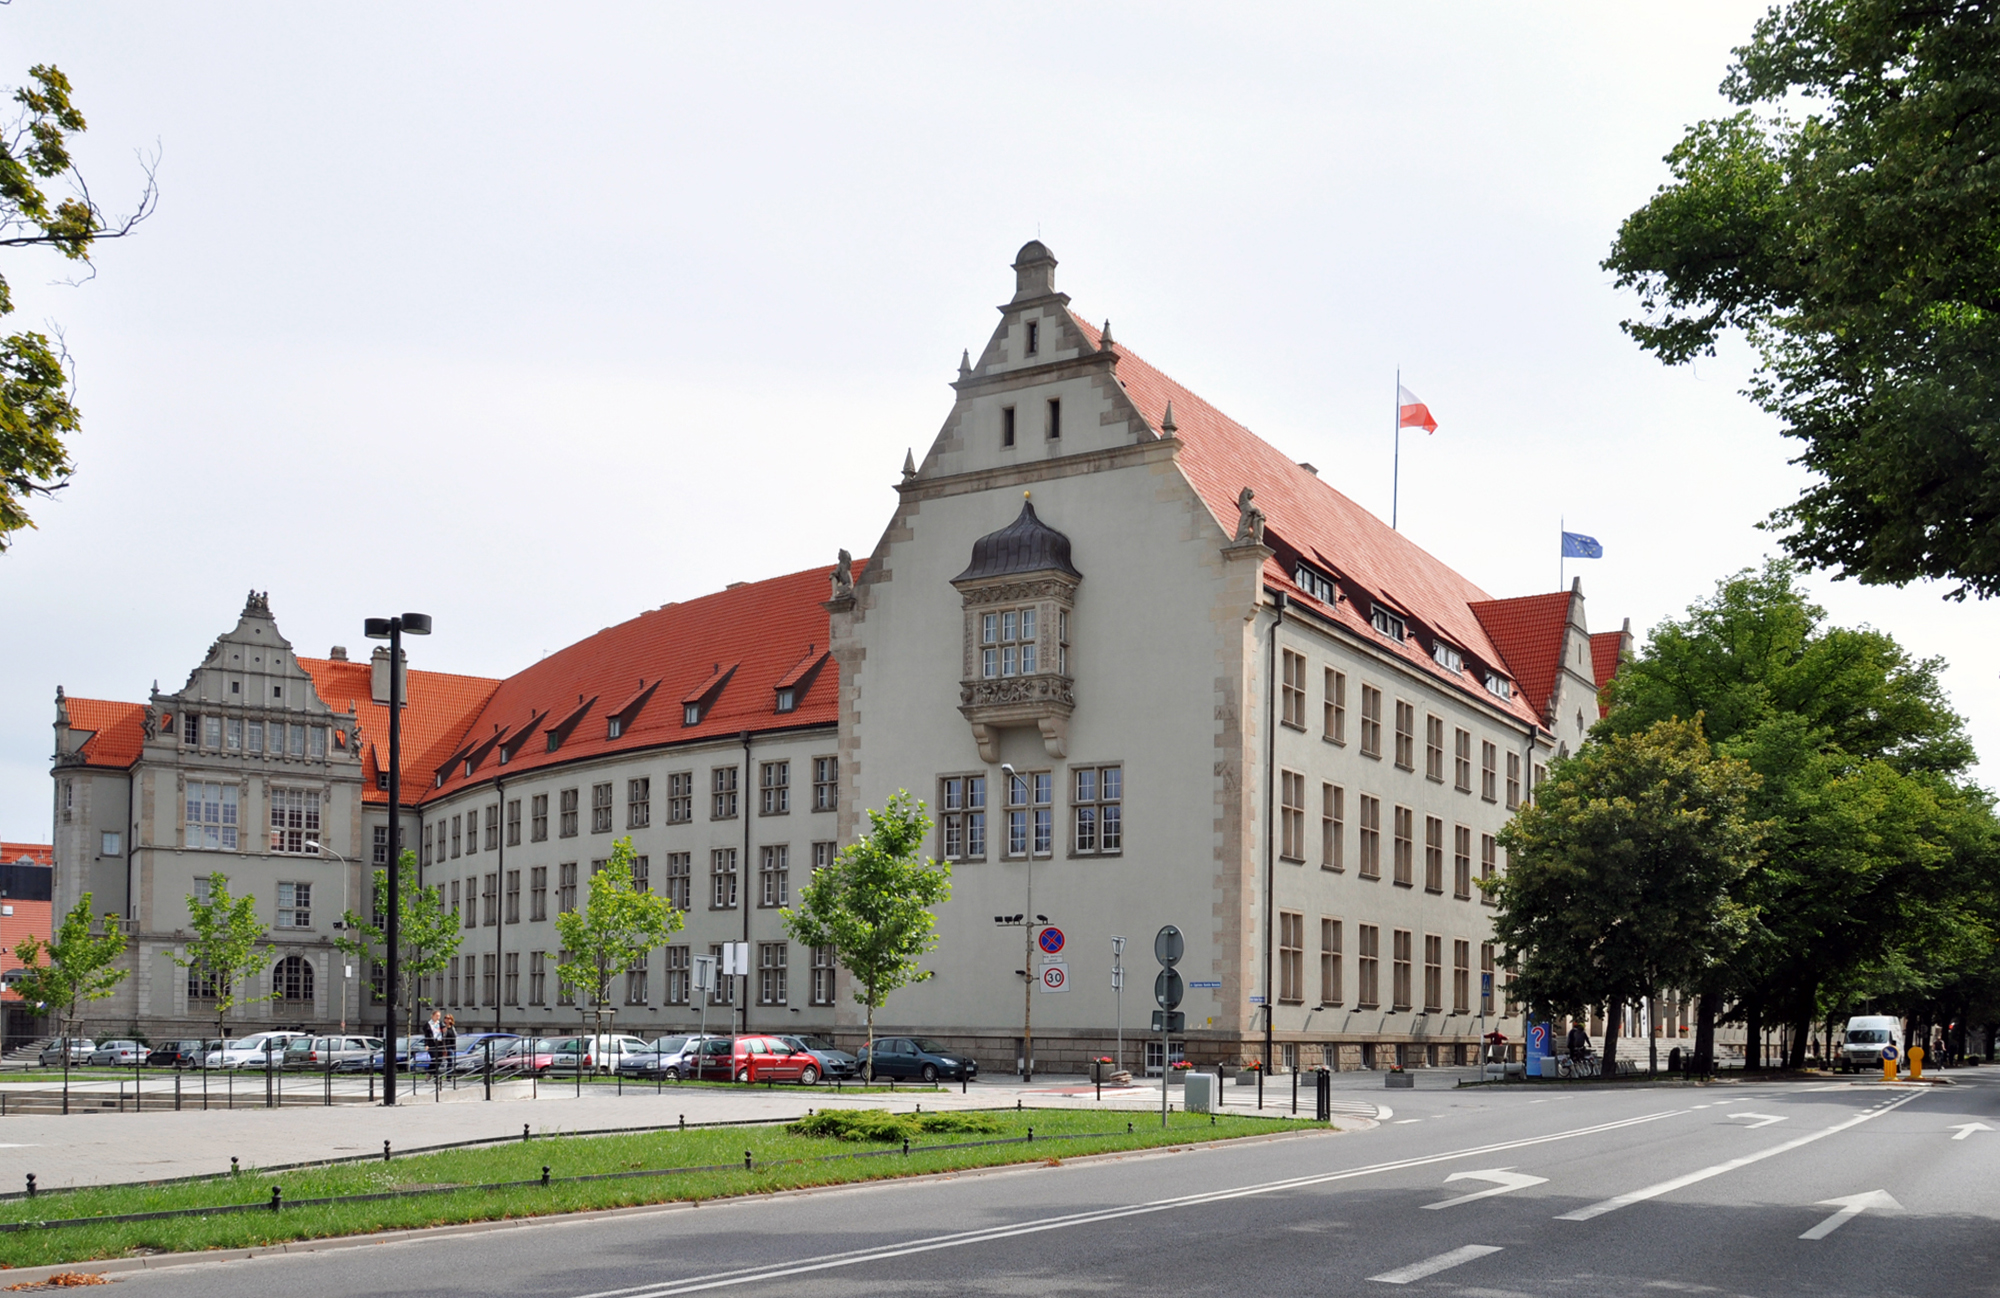 Aiesec Hannover wrocław university of science and technology - wikipedia